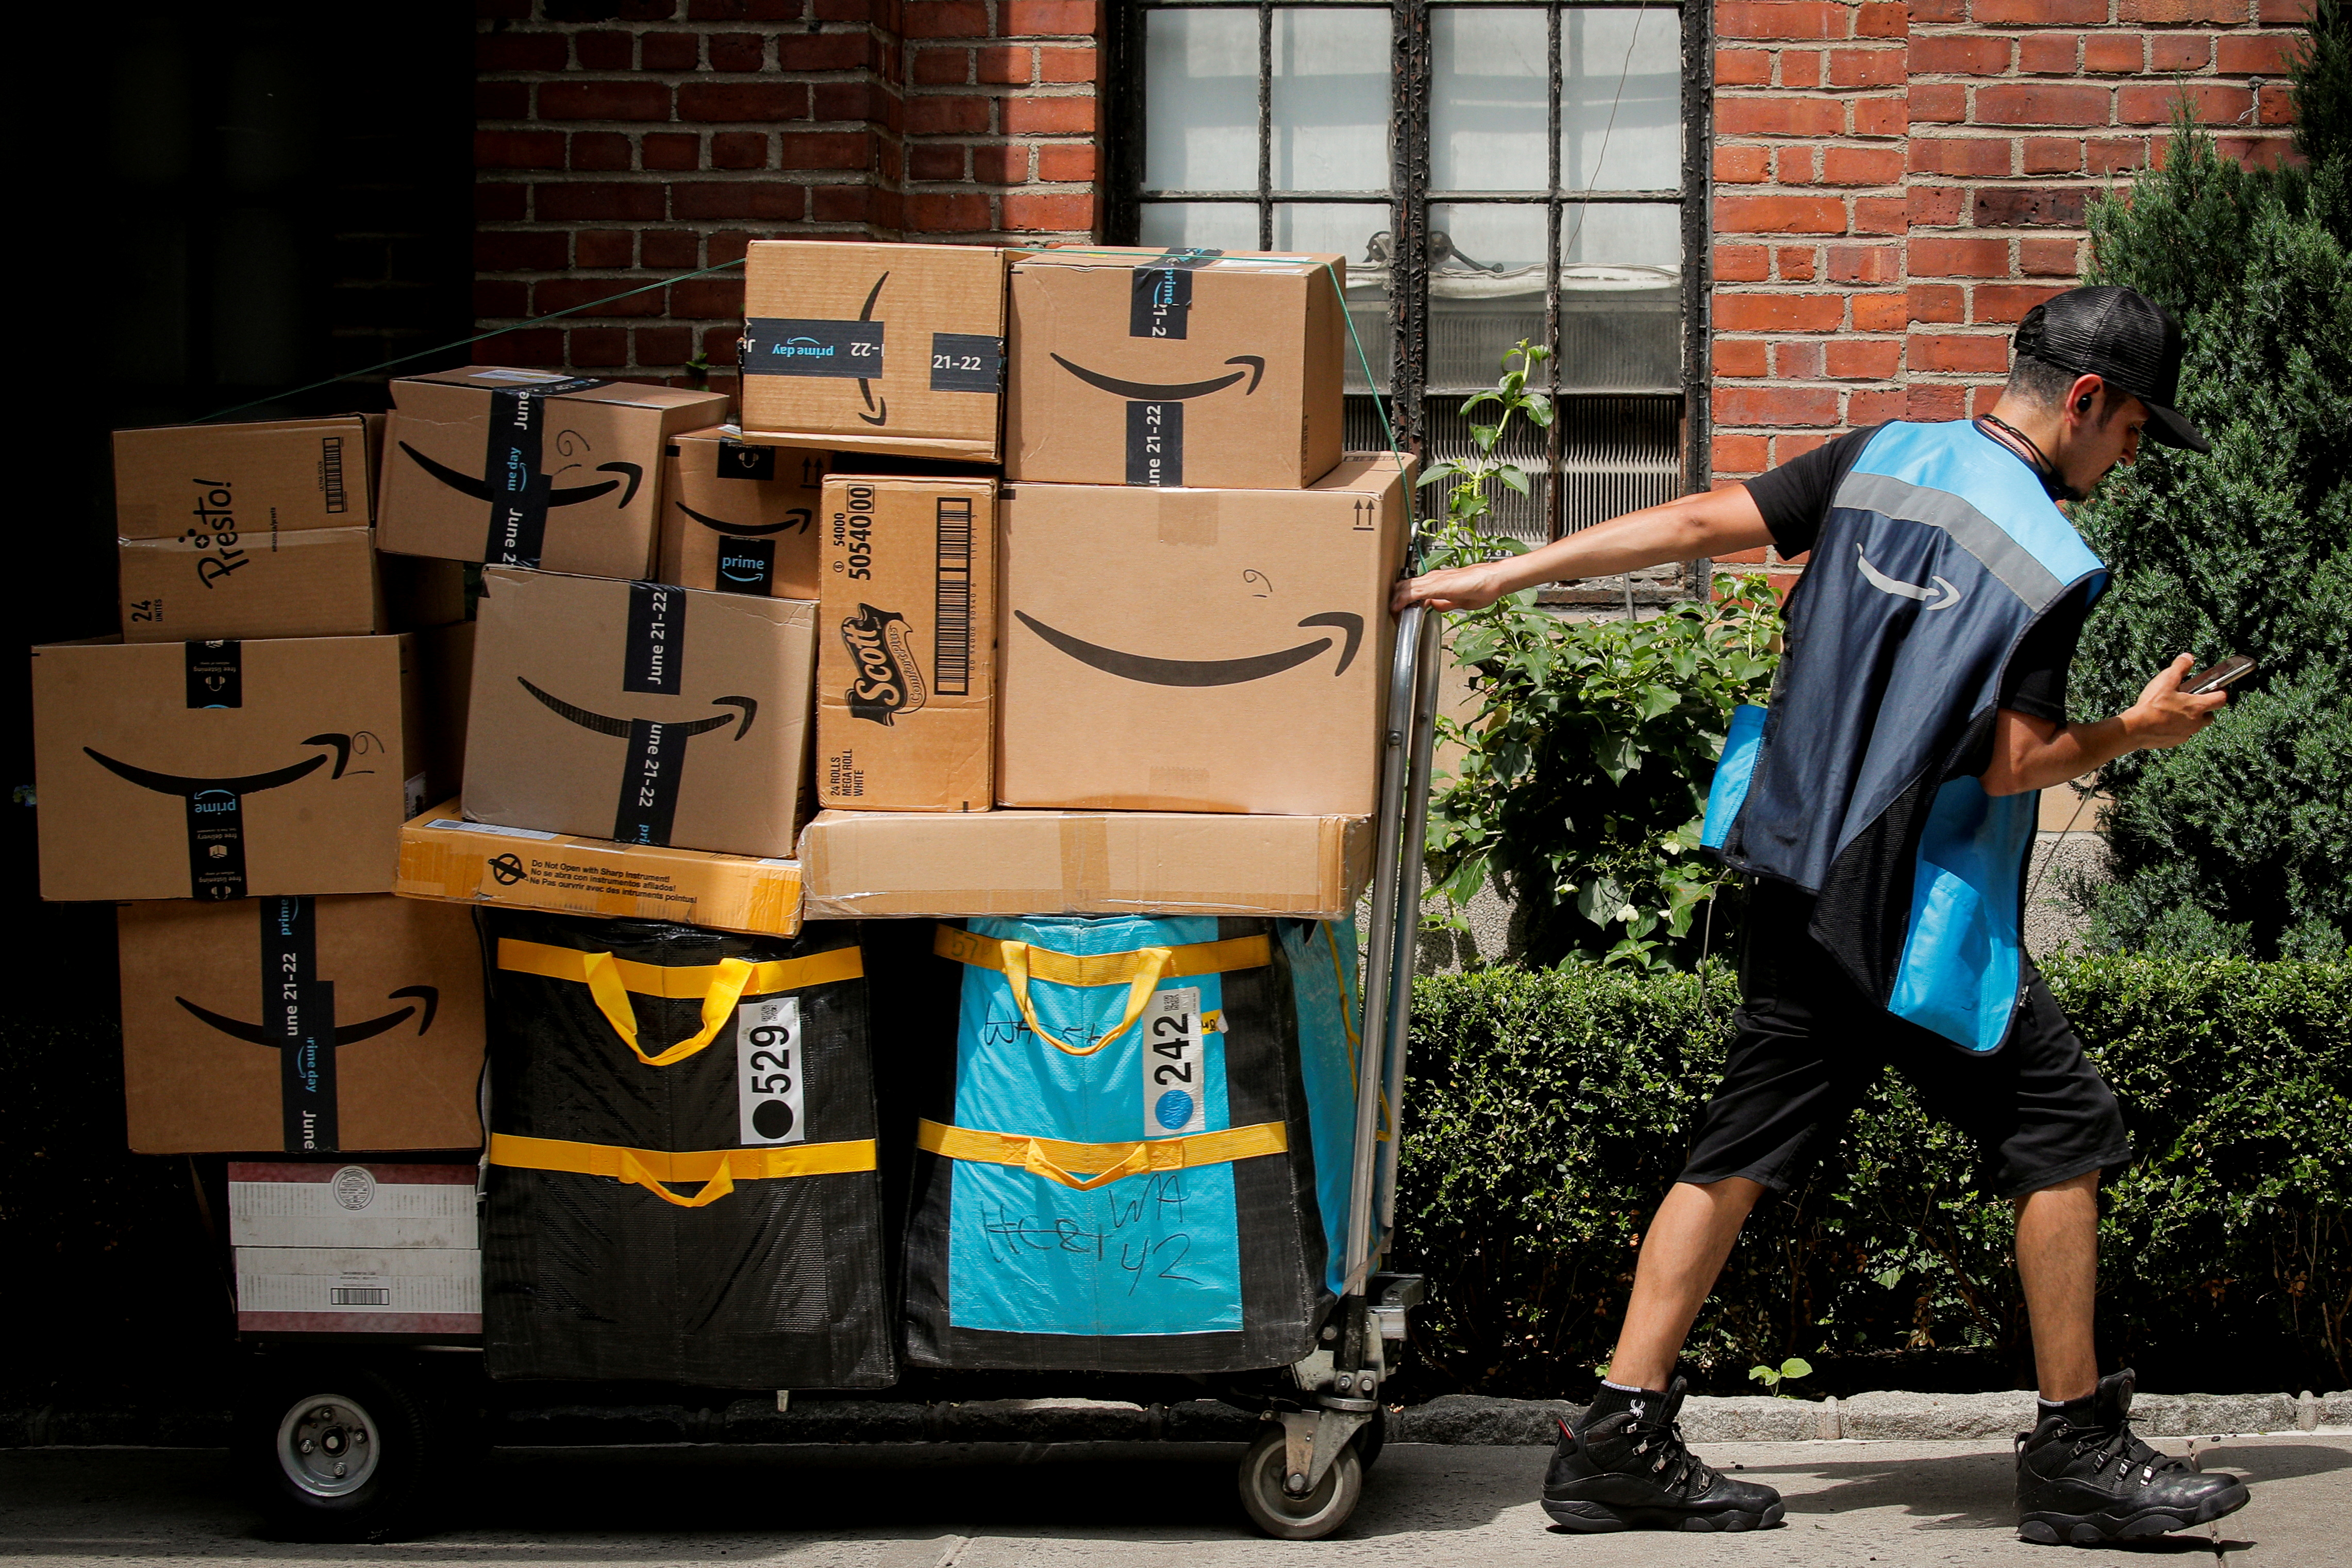 An Amazon delivery worker pulls a delivery cart full of packages during its annual Prime Day promotion in New York City, U.S., June 21, 2021.  REUTERS/Brendan McDermid/File Photo